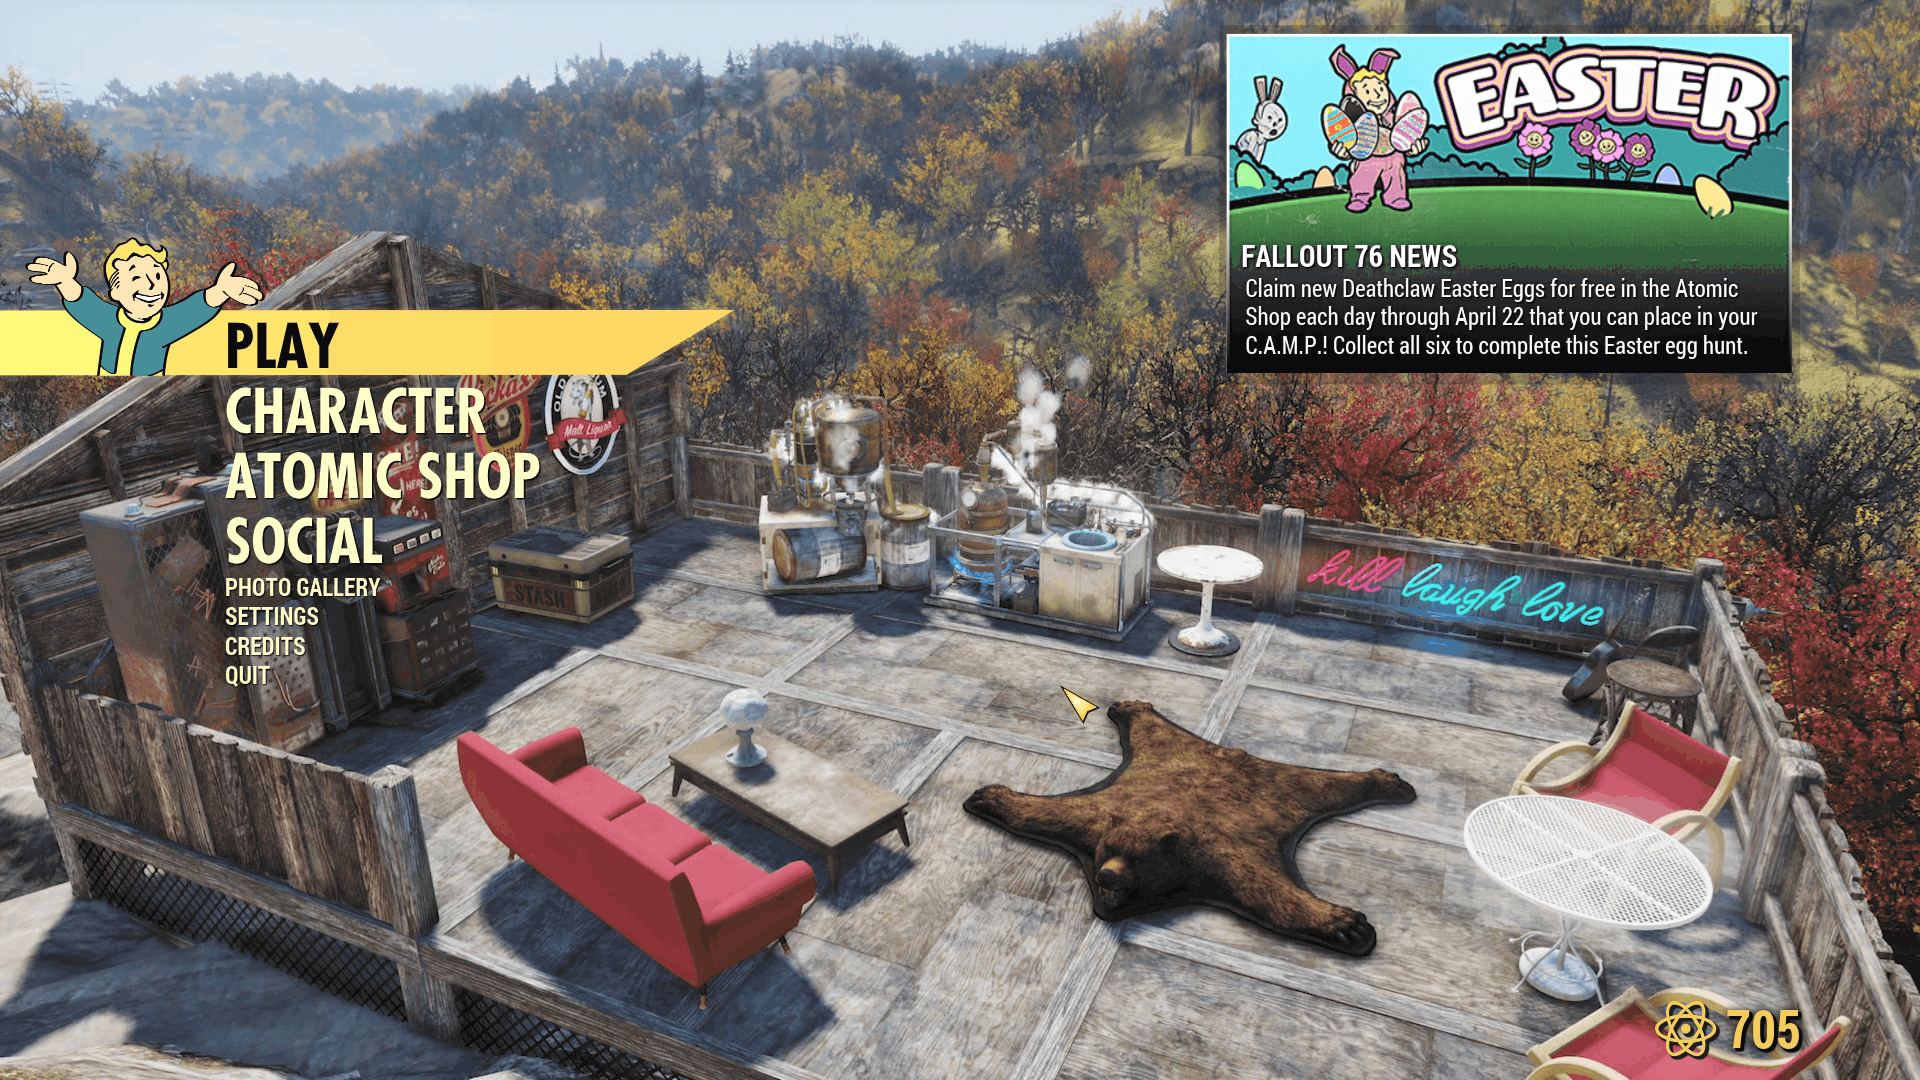 No News is Good News - Fallout 76 Mod download